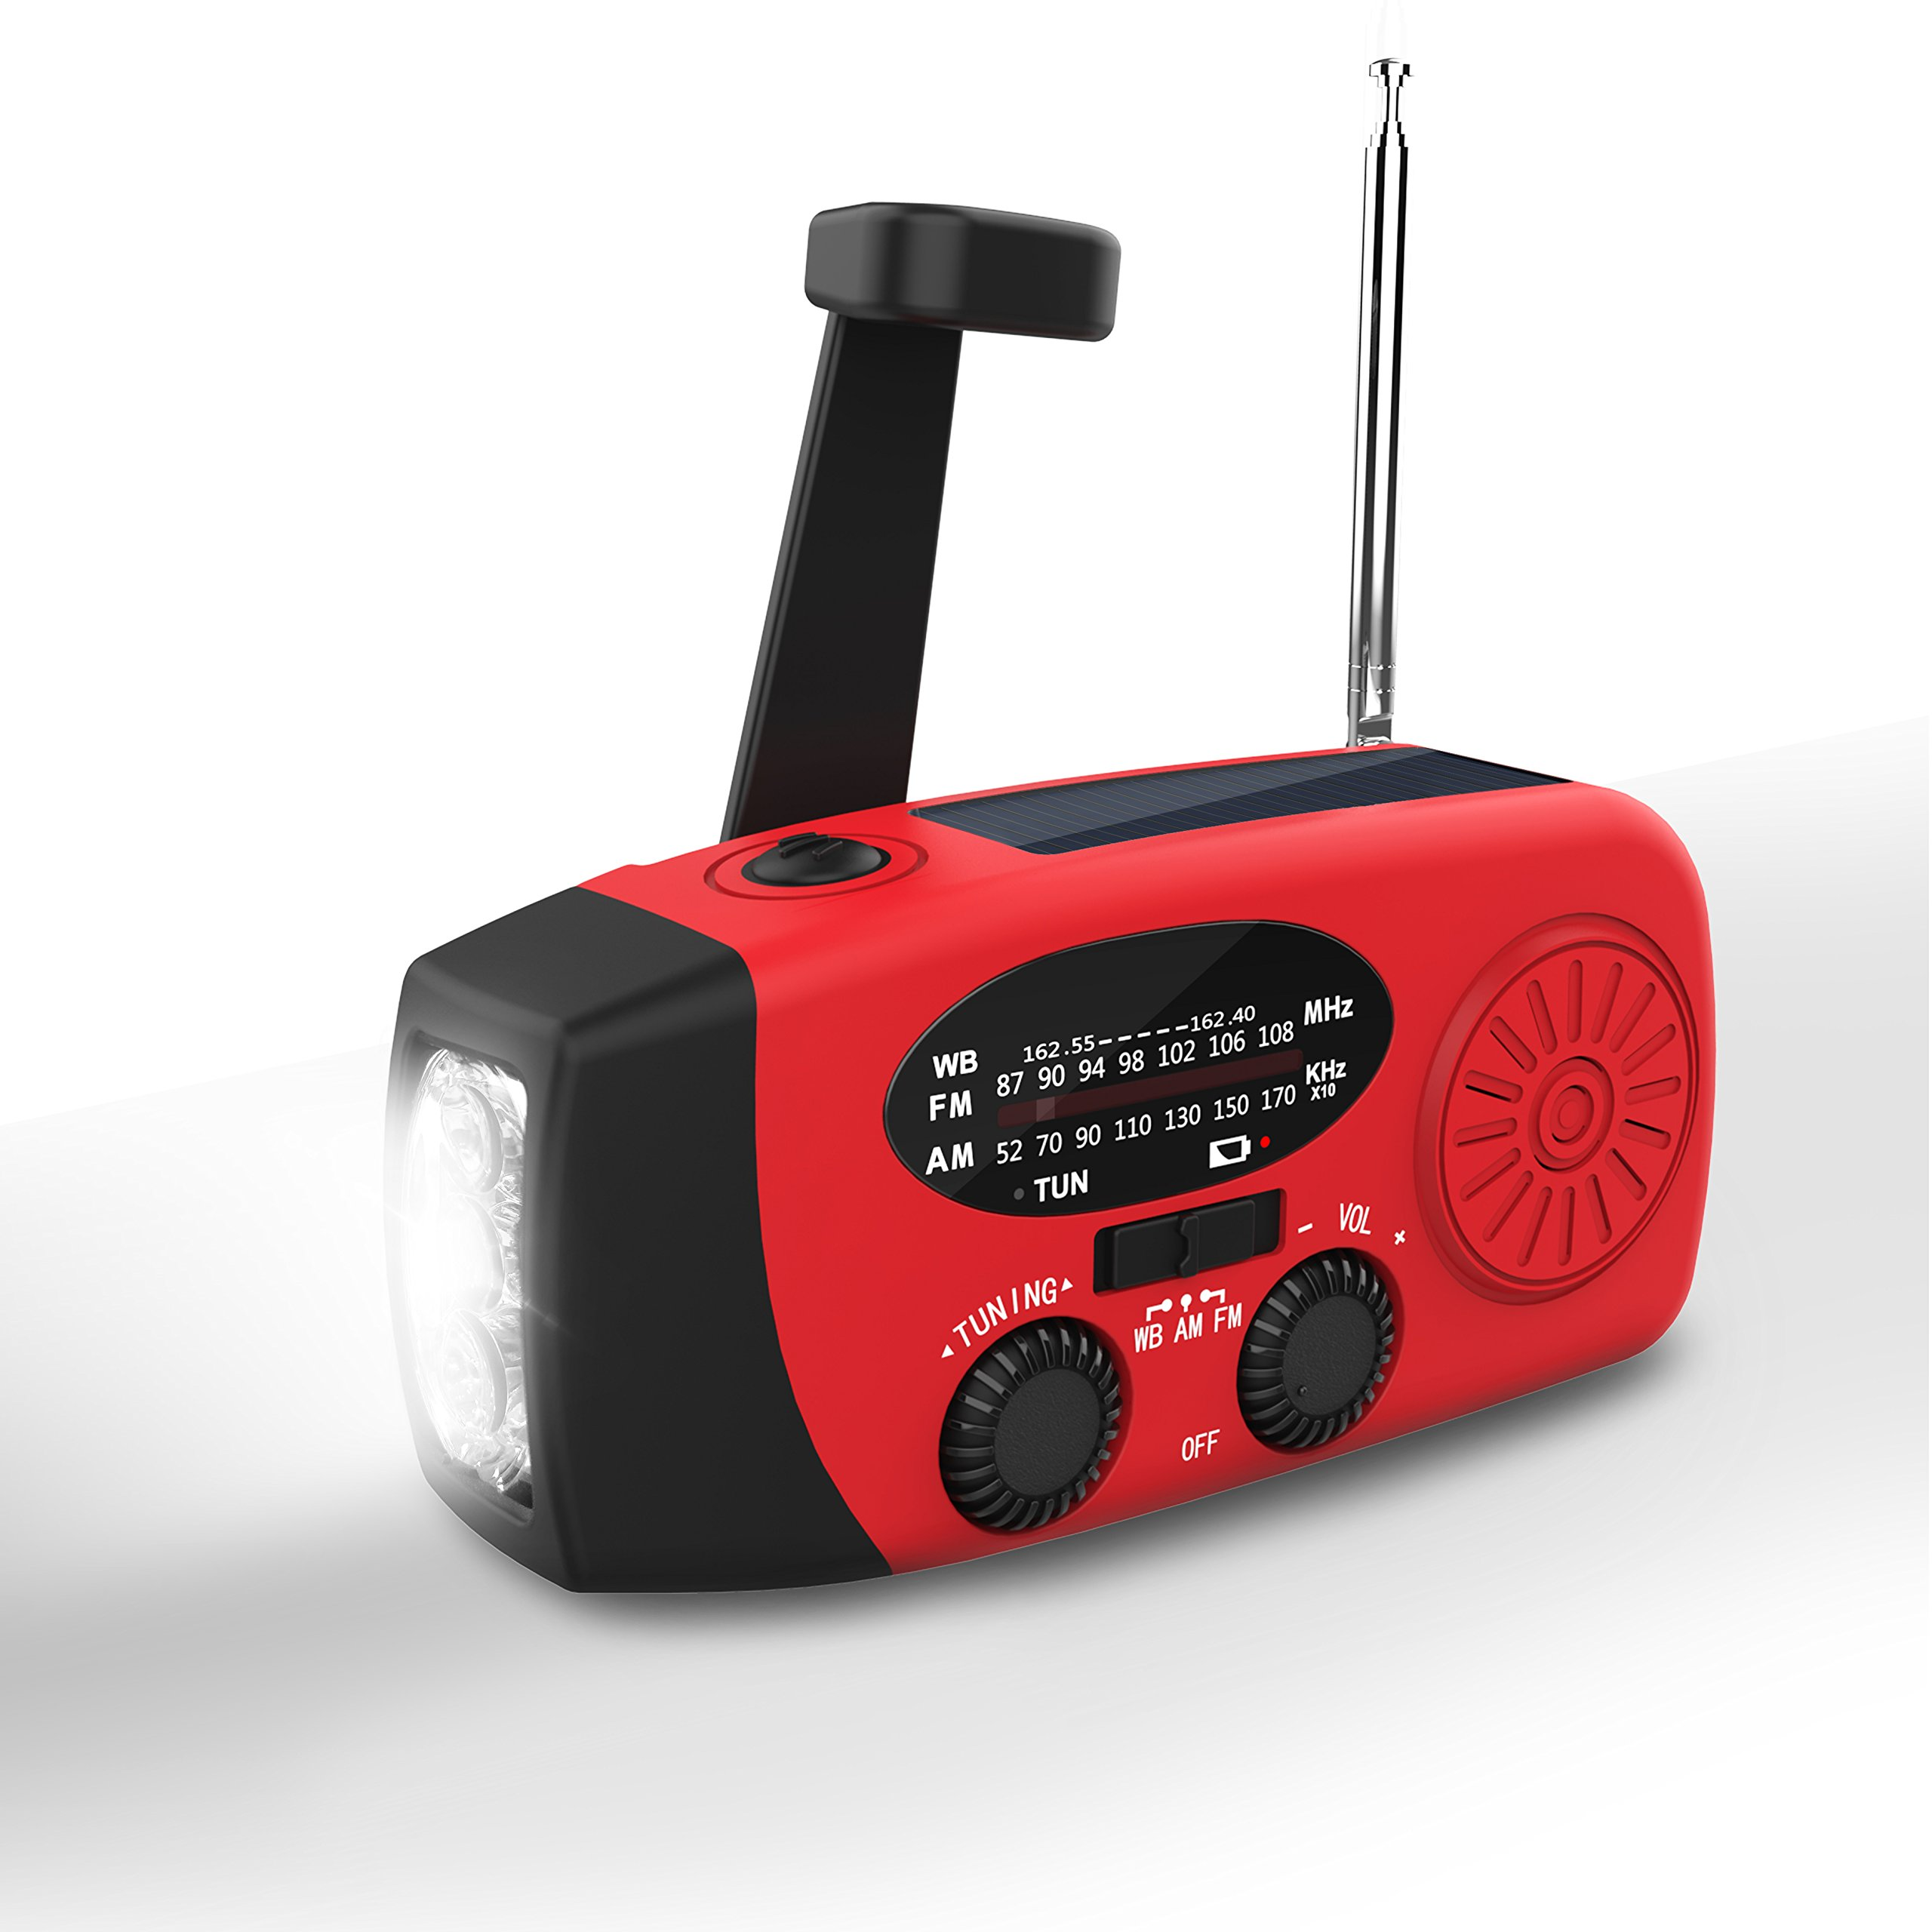 Hand Crank Radio,Valoin 2018 Multi-functional Hand Crank Flashlight with FM NOAA Weather Radio for Emergency/Camping/Outdoor Survival and More